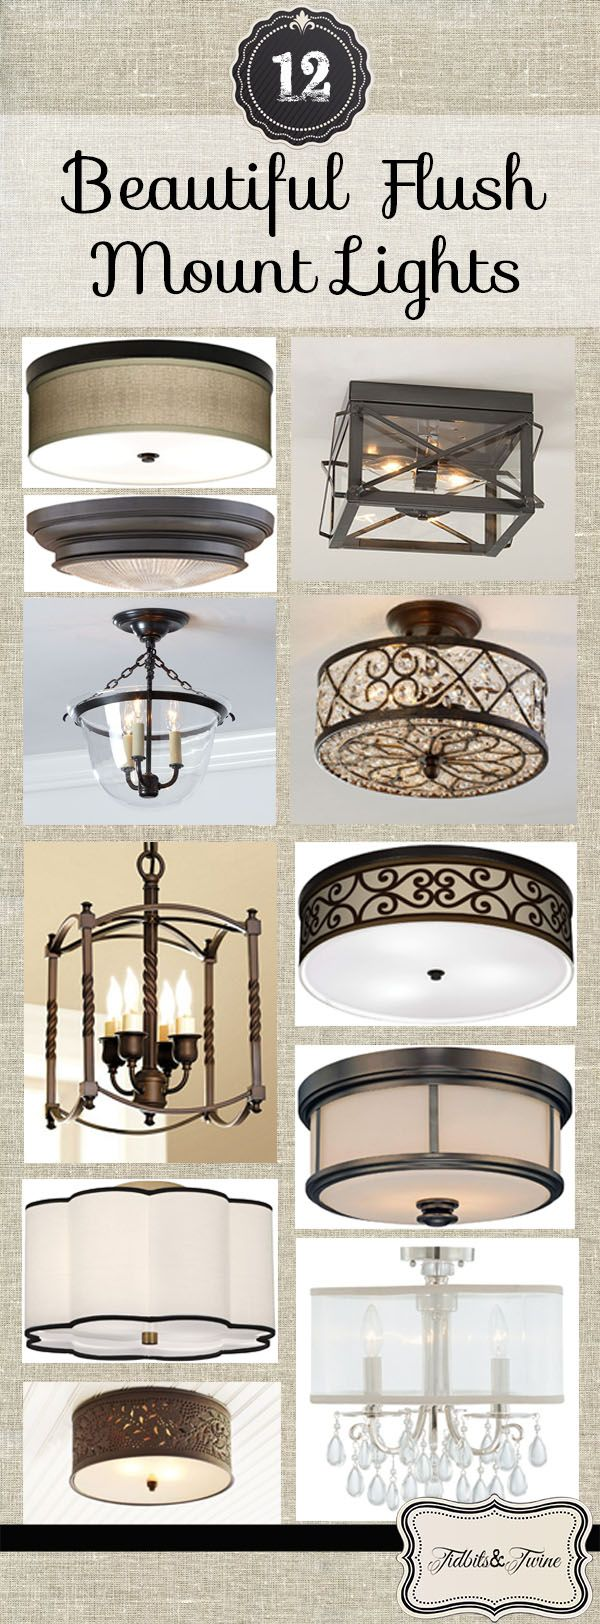 flush mount lighting kitchen lighting flush mount 12 Beautiful Flush Mount Ceiling Lights